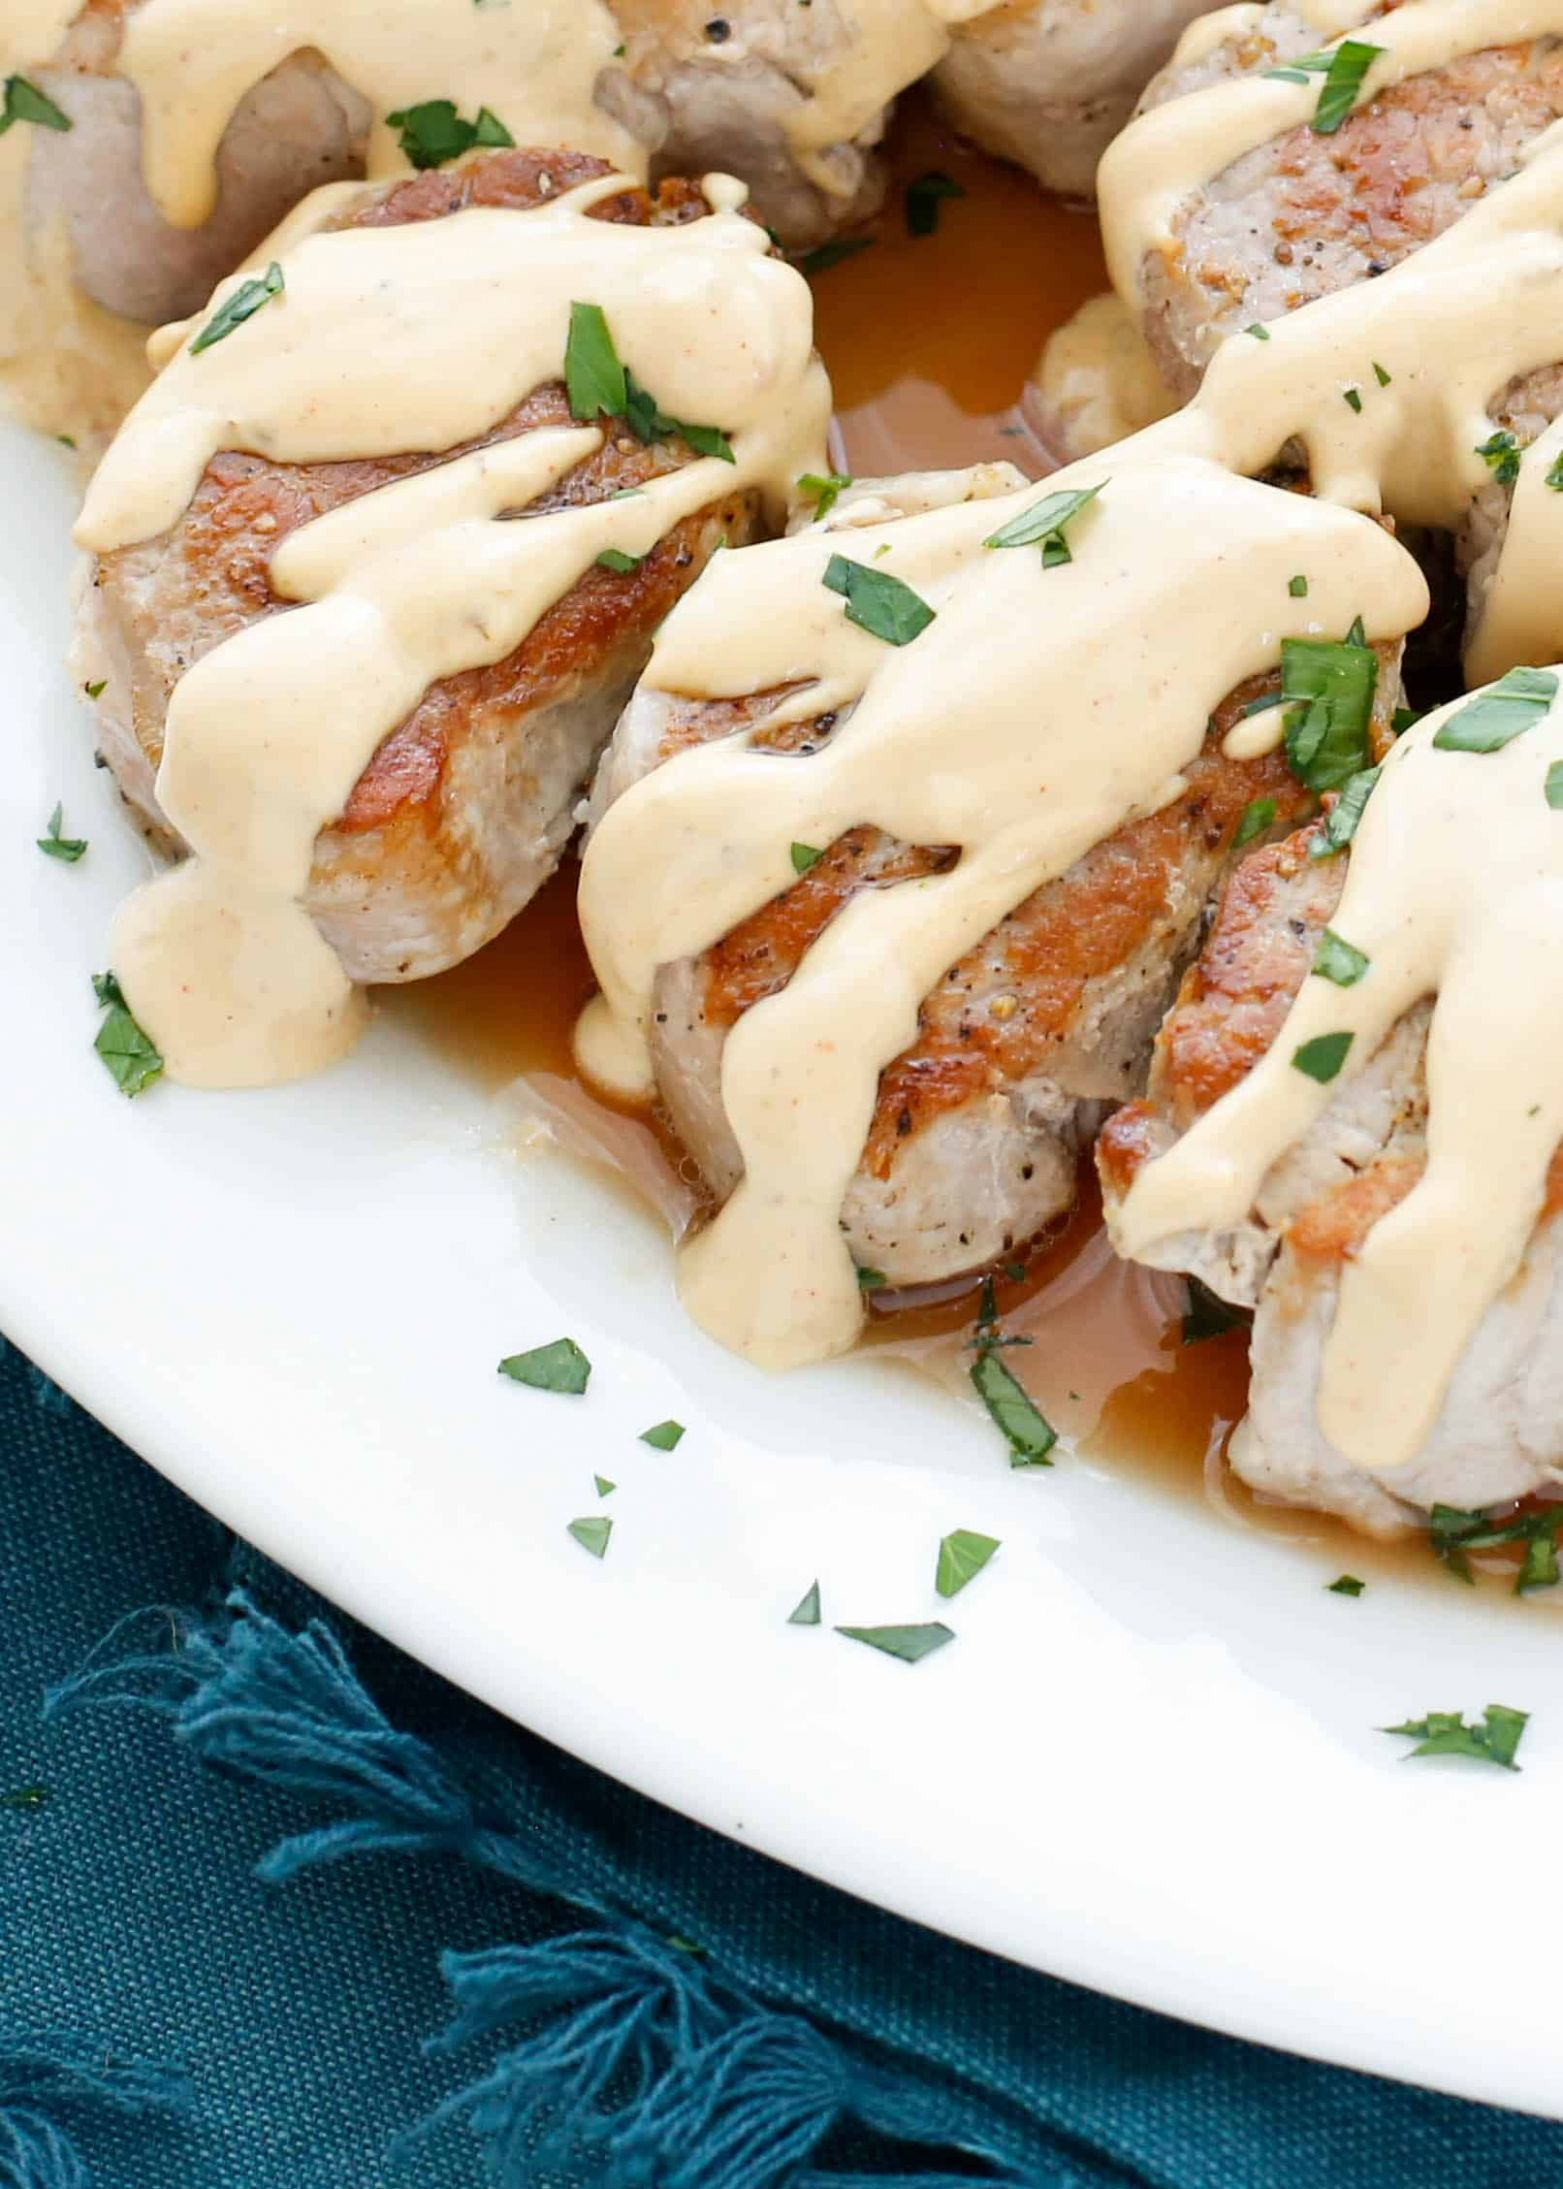 Pan Fried Pork Medallions with Creamy Wine Sauce - Recipes Pork Medallions